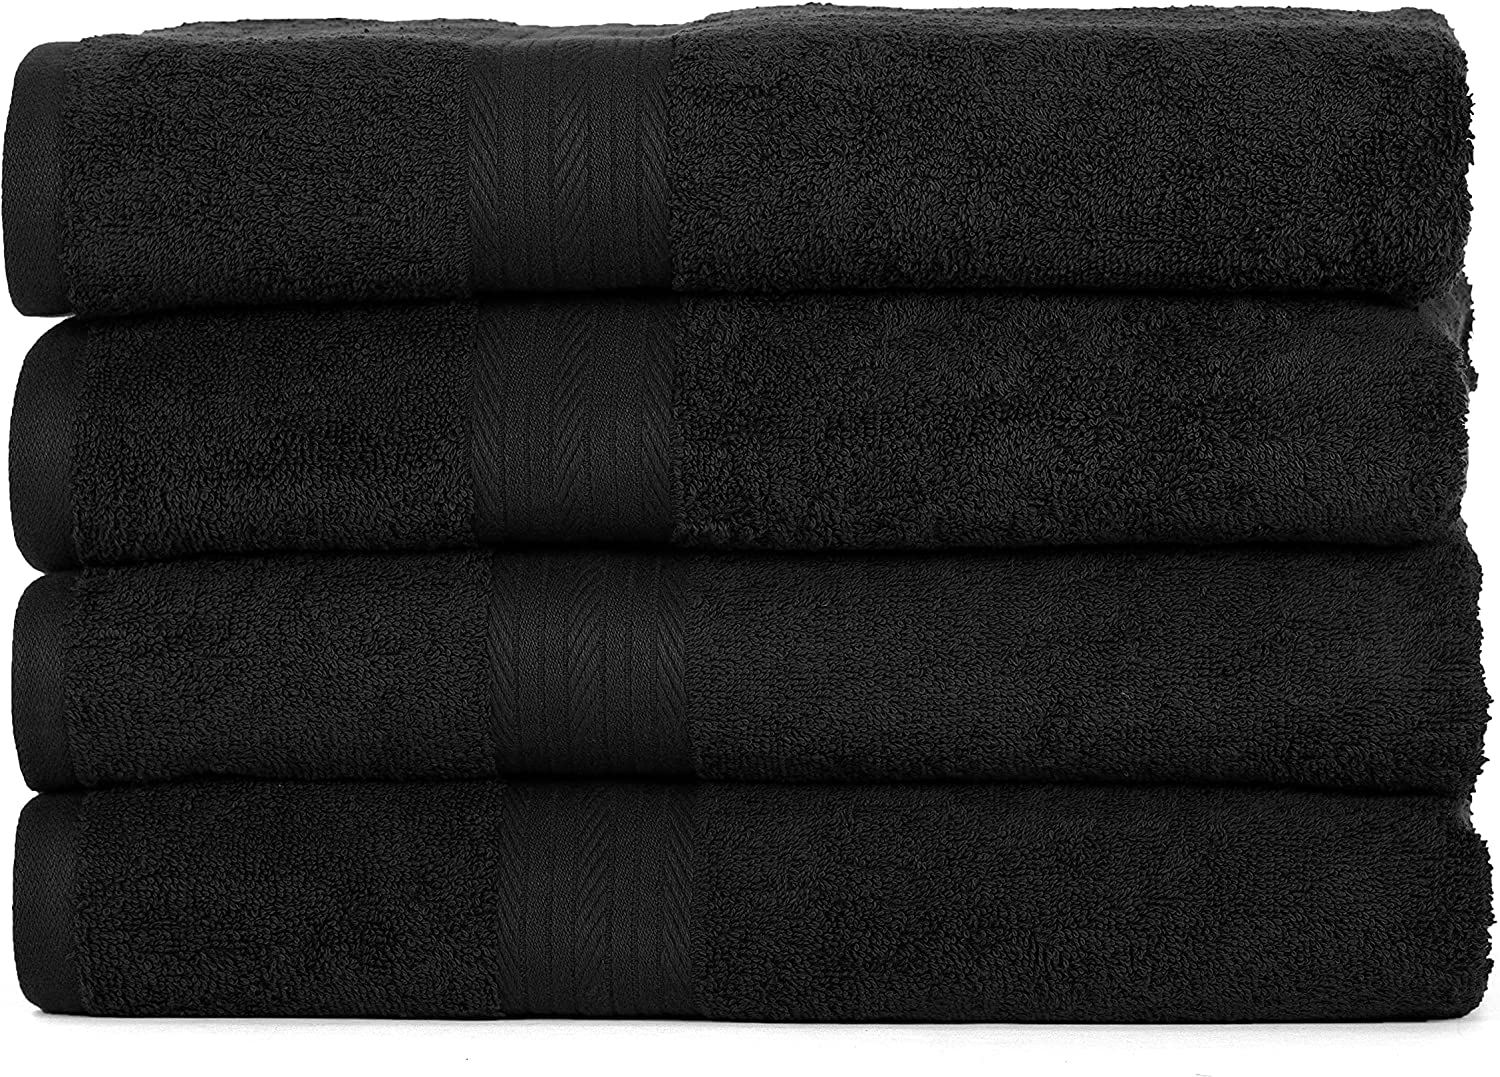 Ample Decor Weekly update Max 49% OFF Hotel Sheets - Ultra Extra Large Oversized Soft Bath